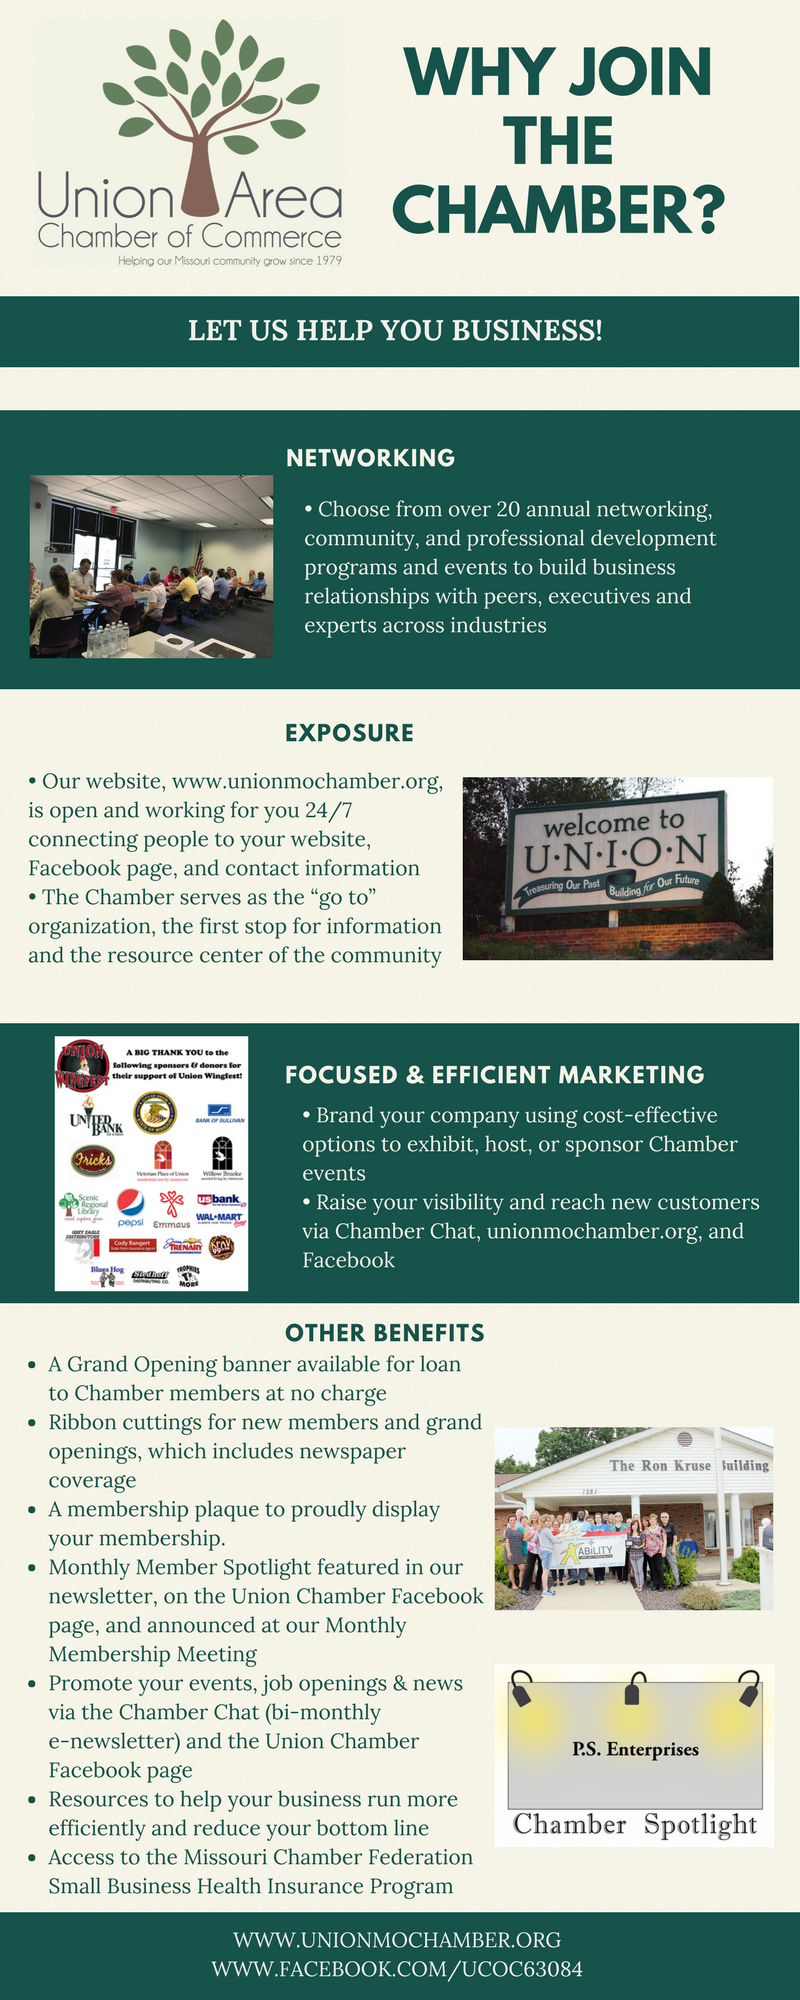 Reasons to join the Chamber infographic